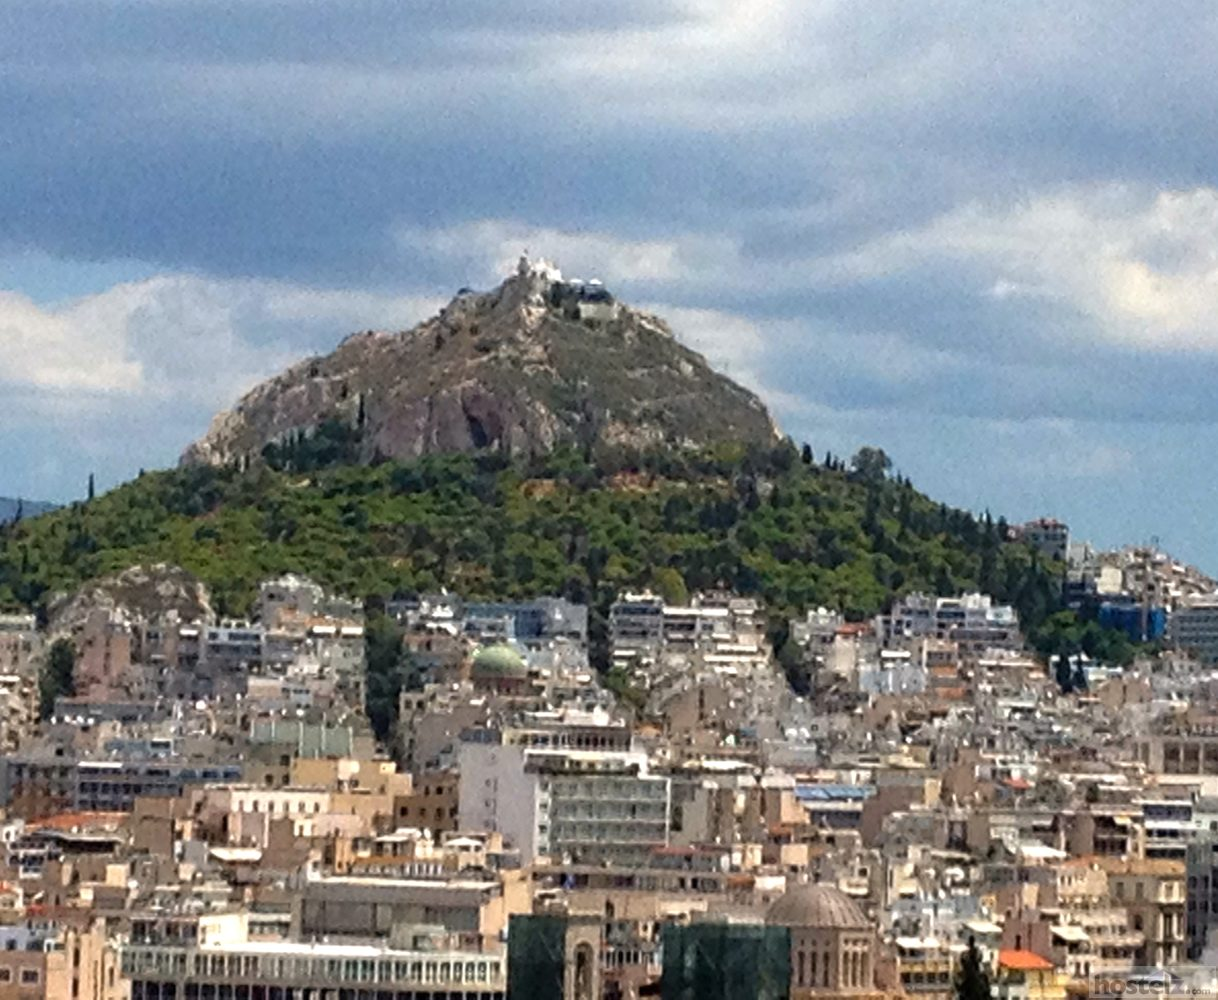 Acropolis View from Terrace